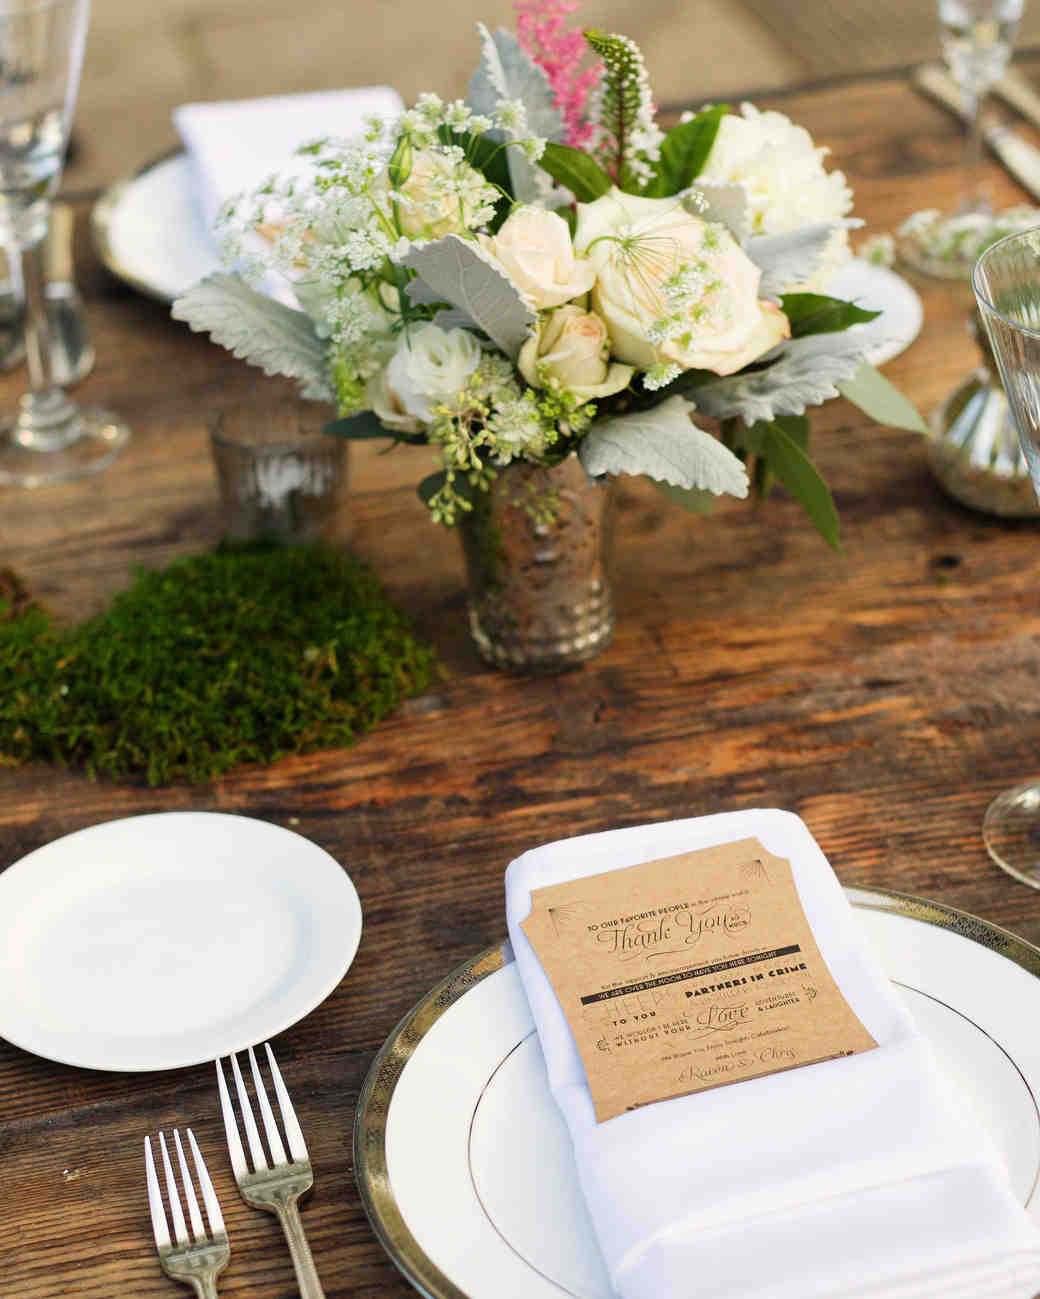 Table Setting on Wooden Table with Kraft Paper Menu